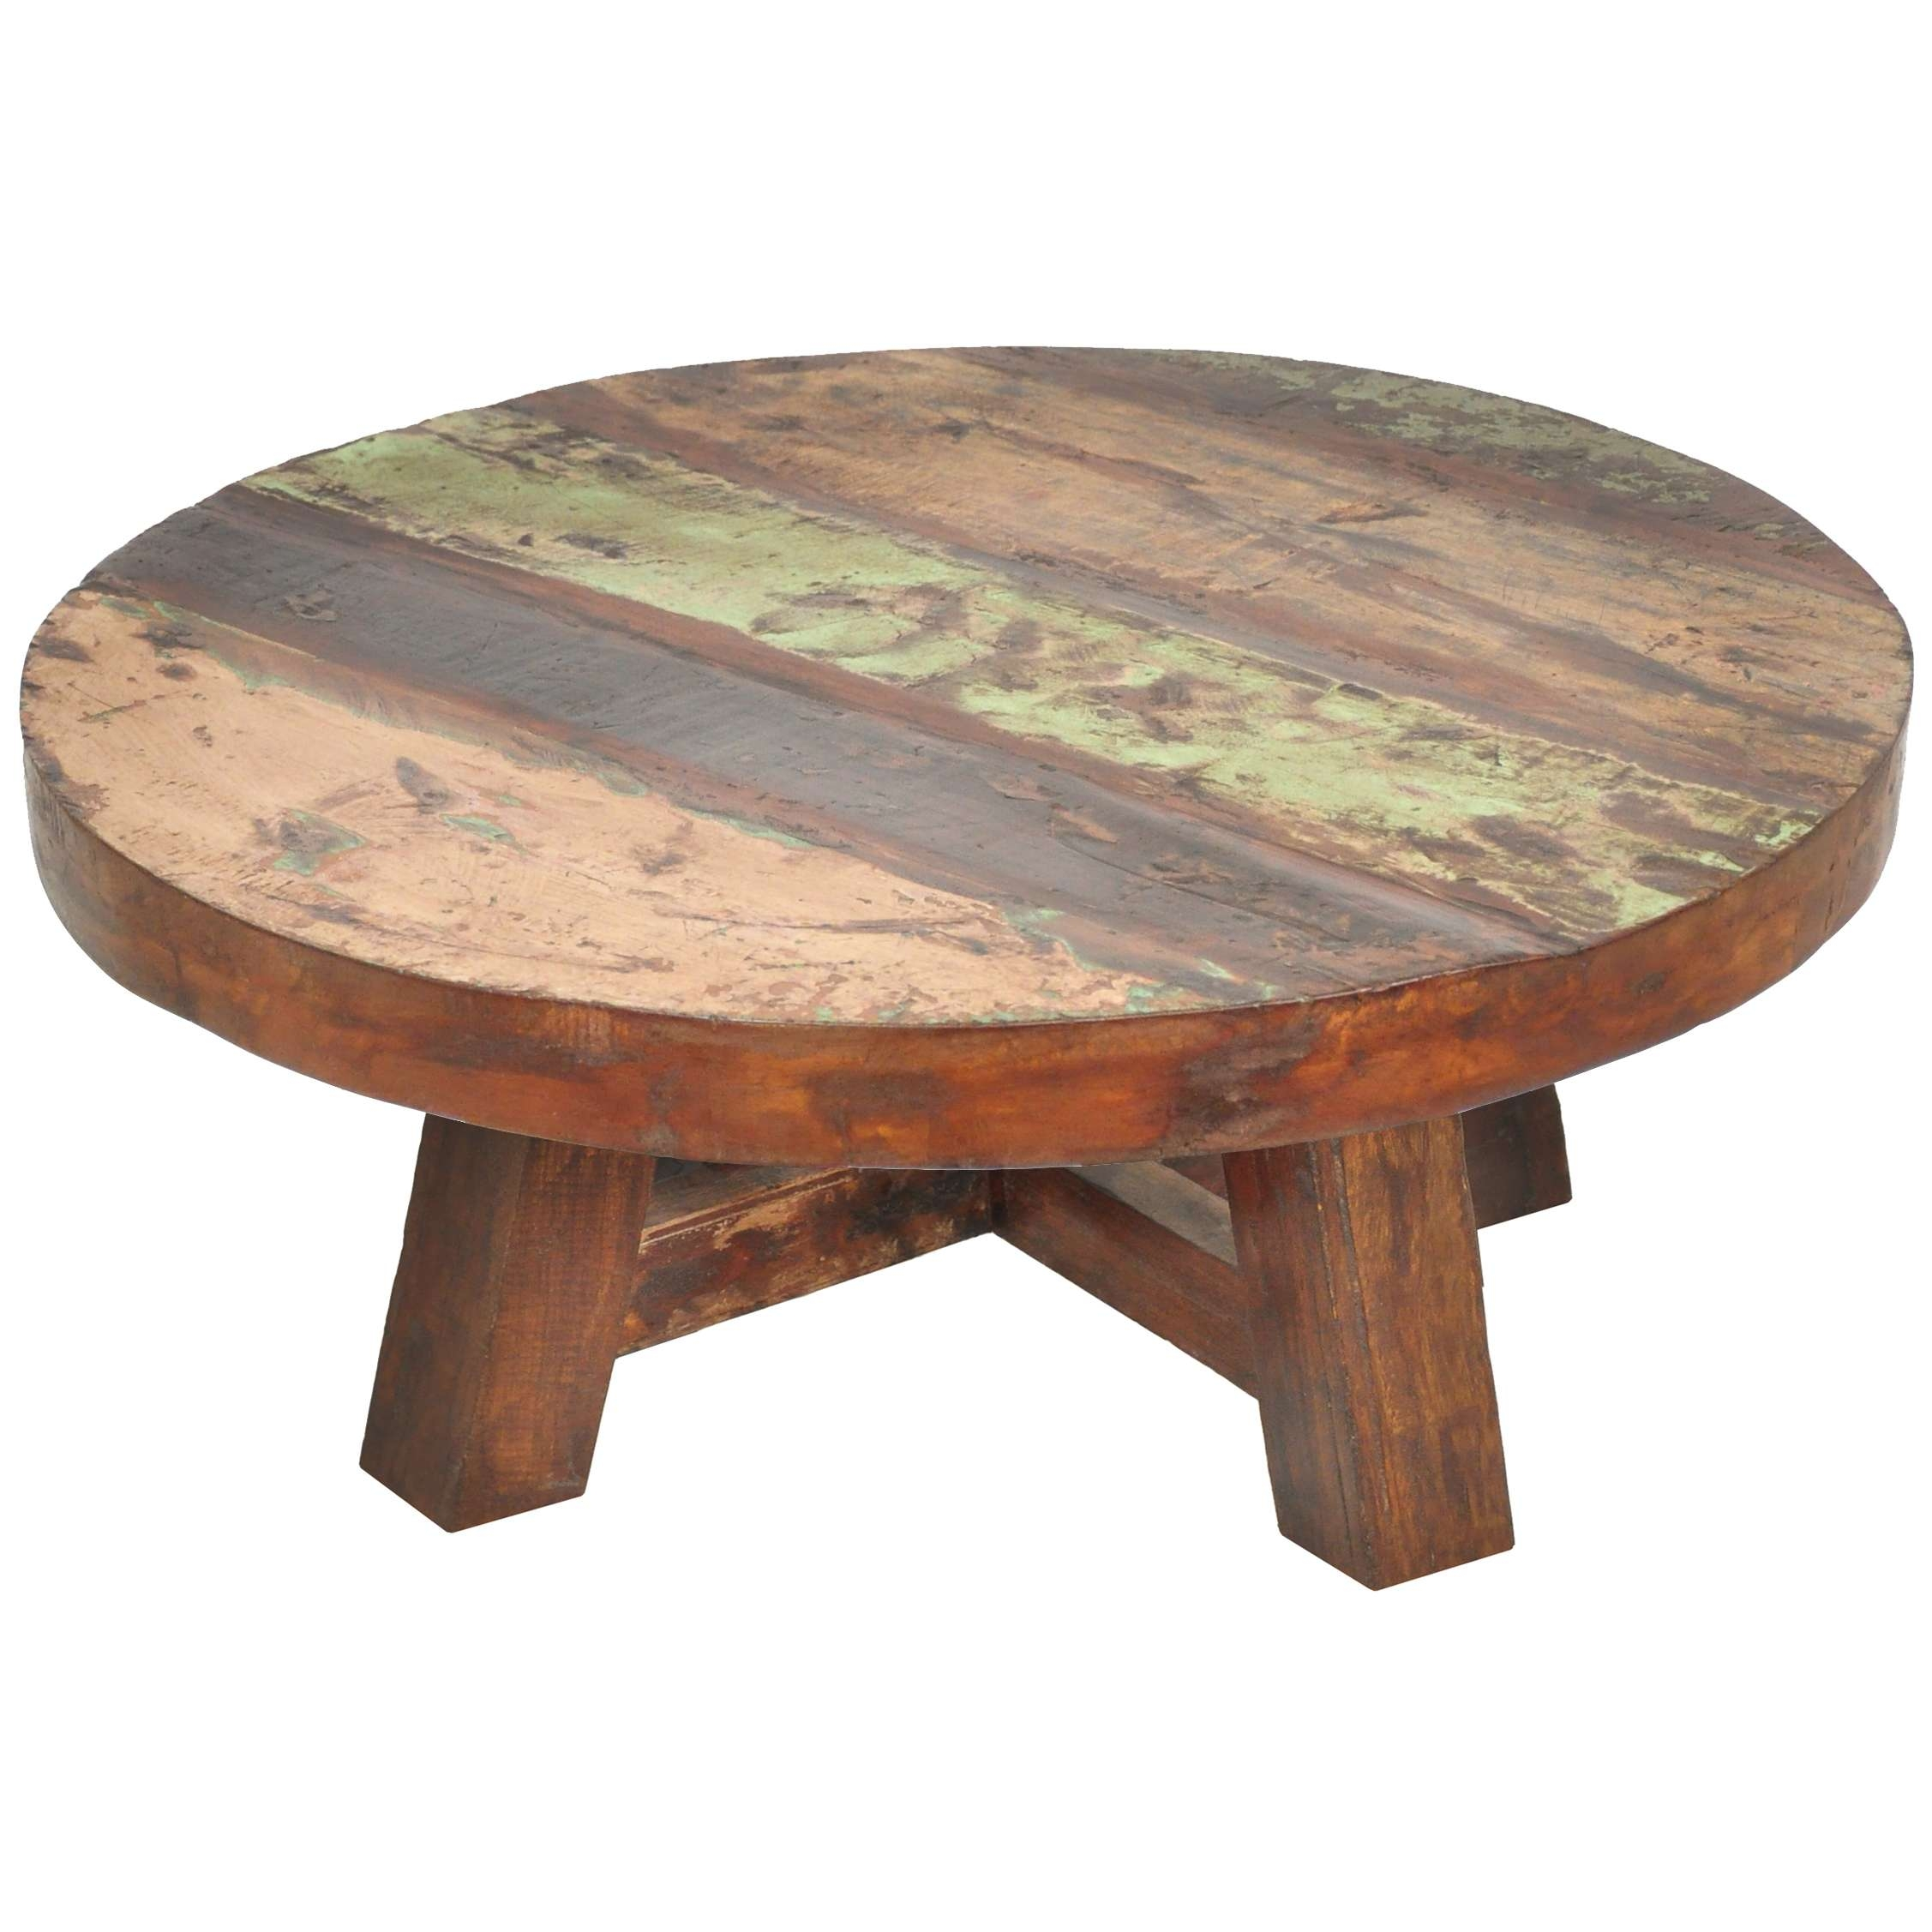 Coffee Tables Ideas: Best Small Round Coffee Tables Uk Round Inside Most Popular Small Circular Coffee Table (View 2 of 20)